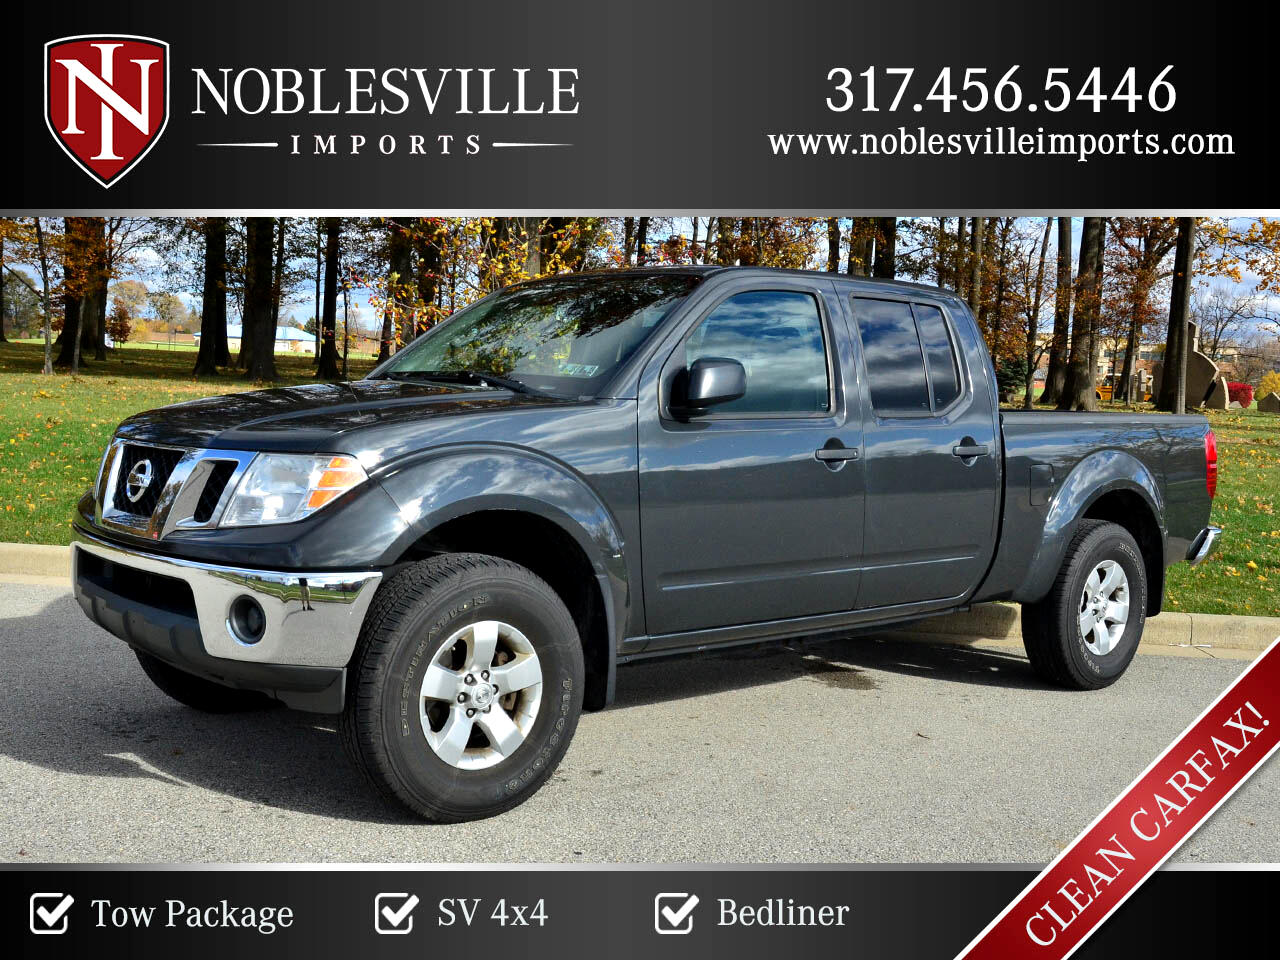 2011 Nissan Frontier 4WD Crew Cab LWB Auto SV